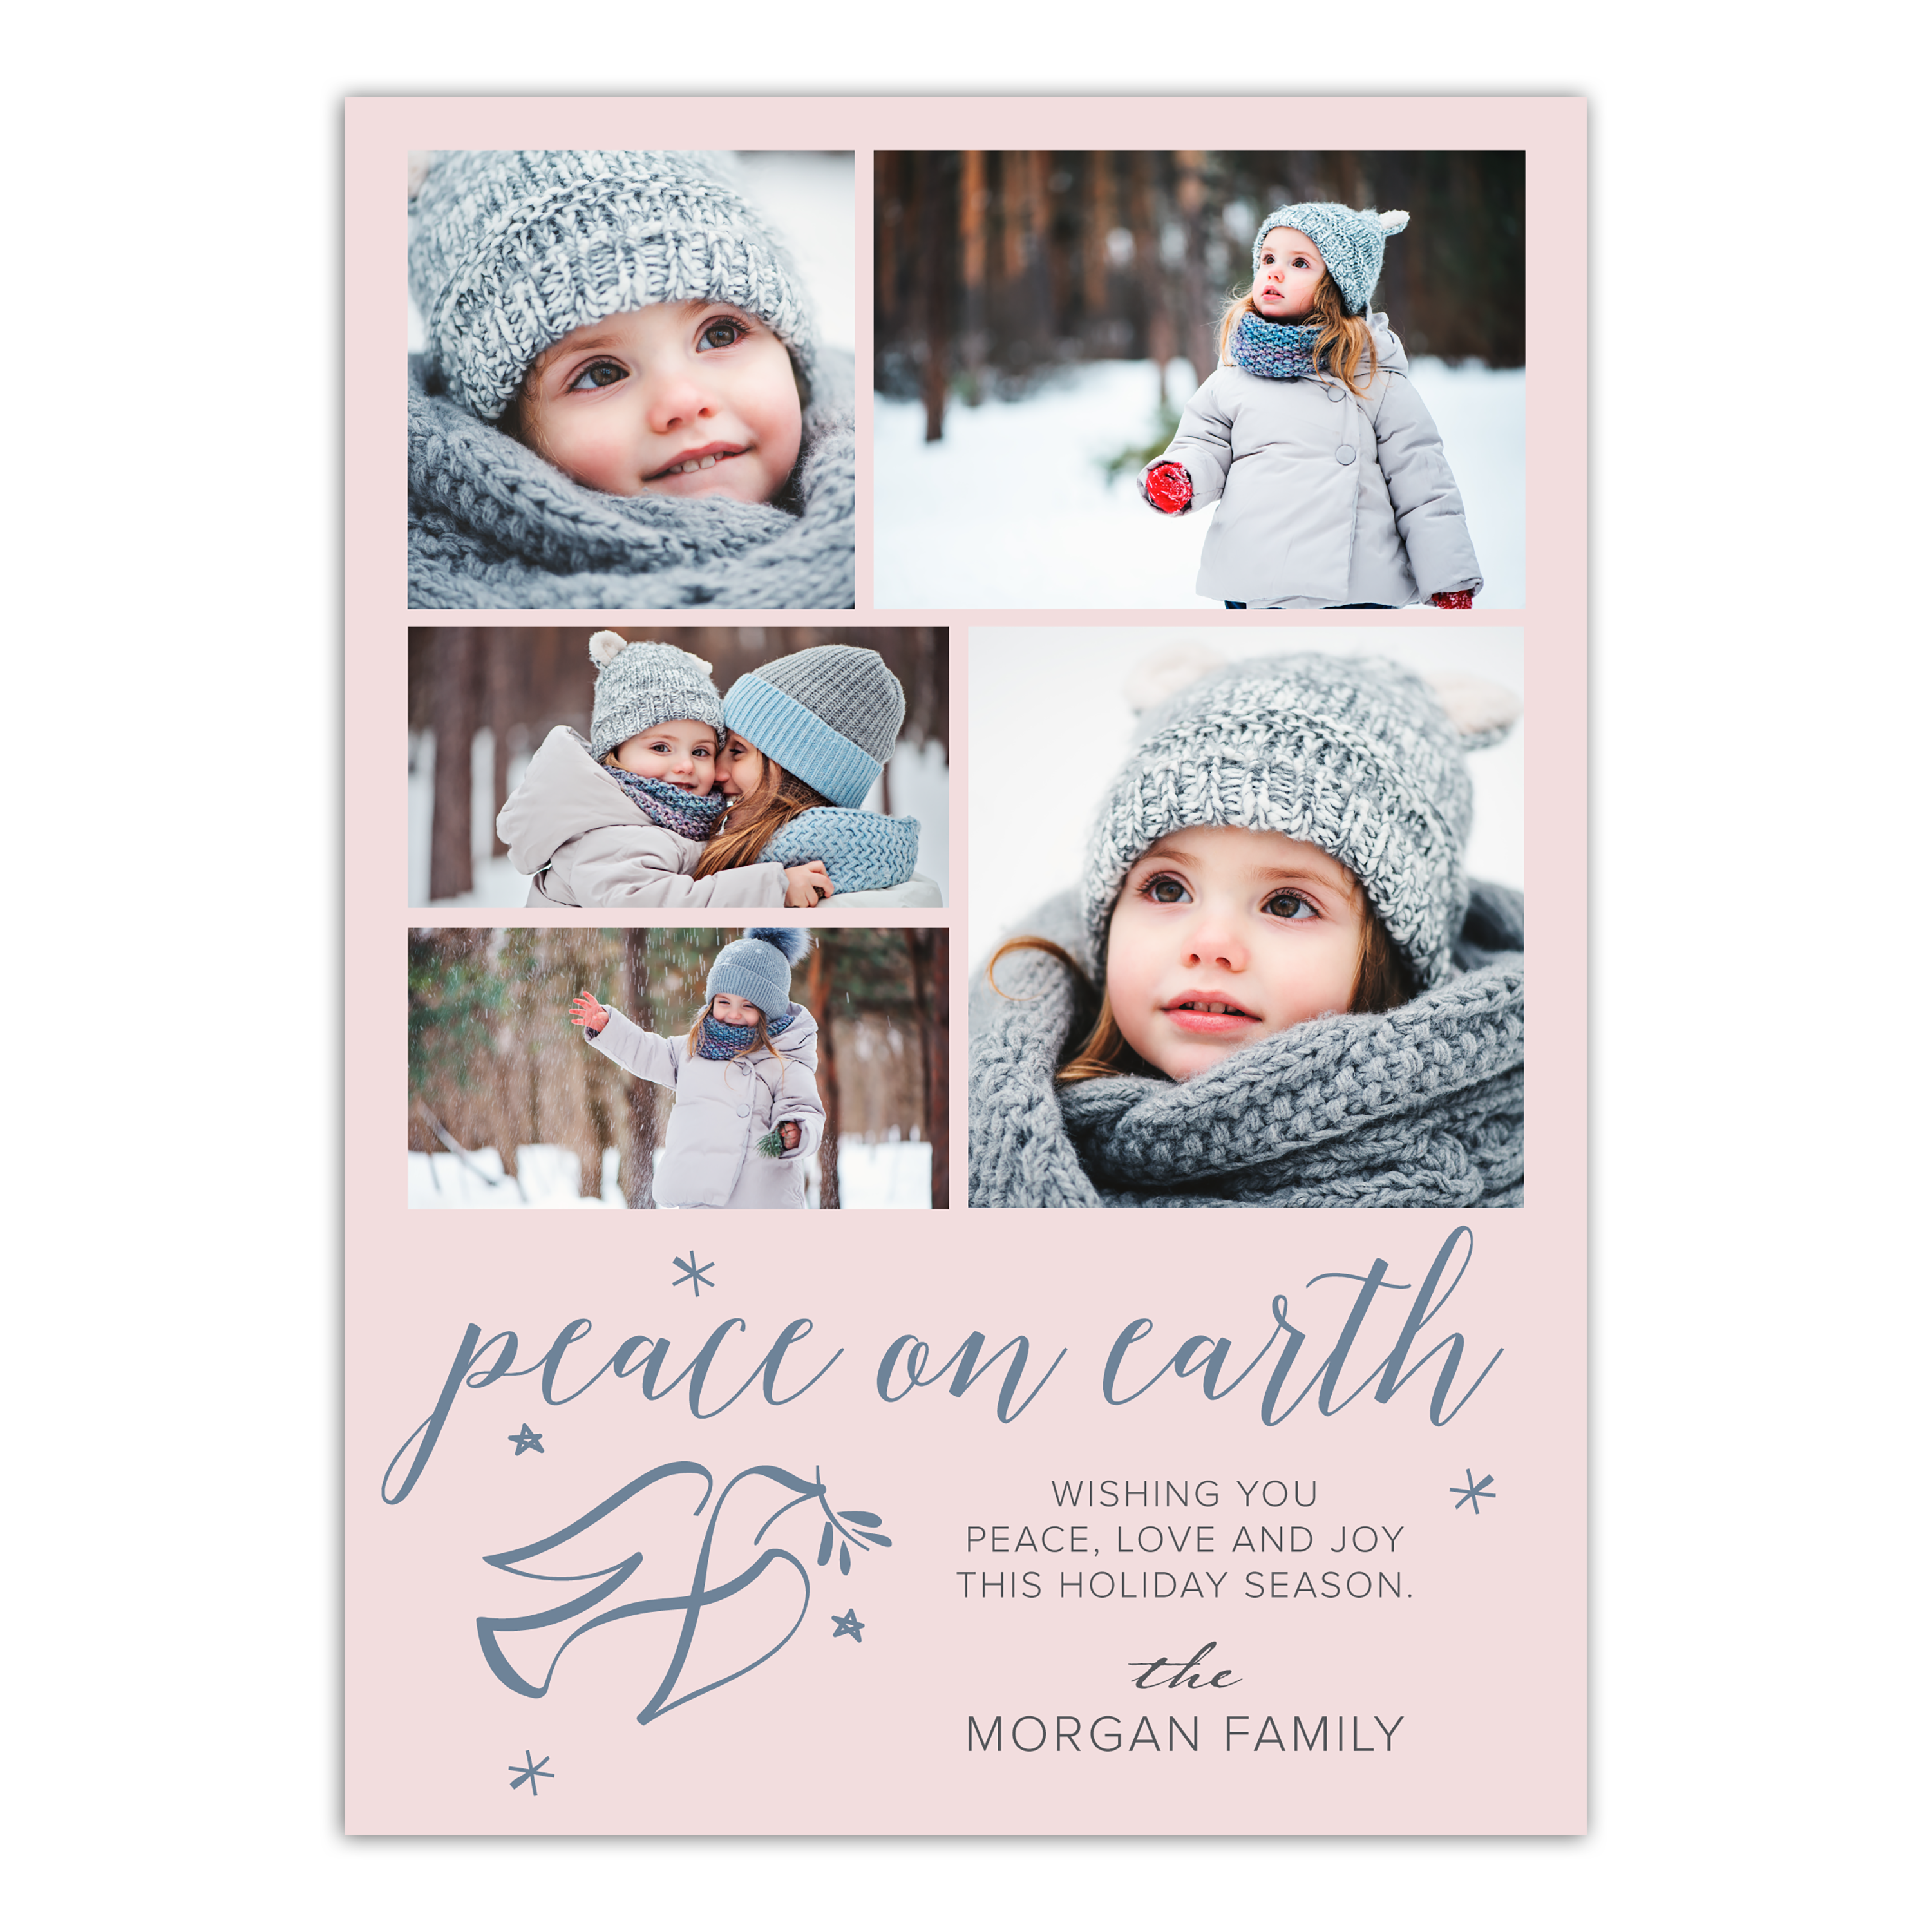 Personalized Holiday Photo Card - Peace On Earth